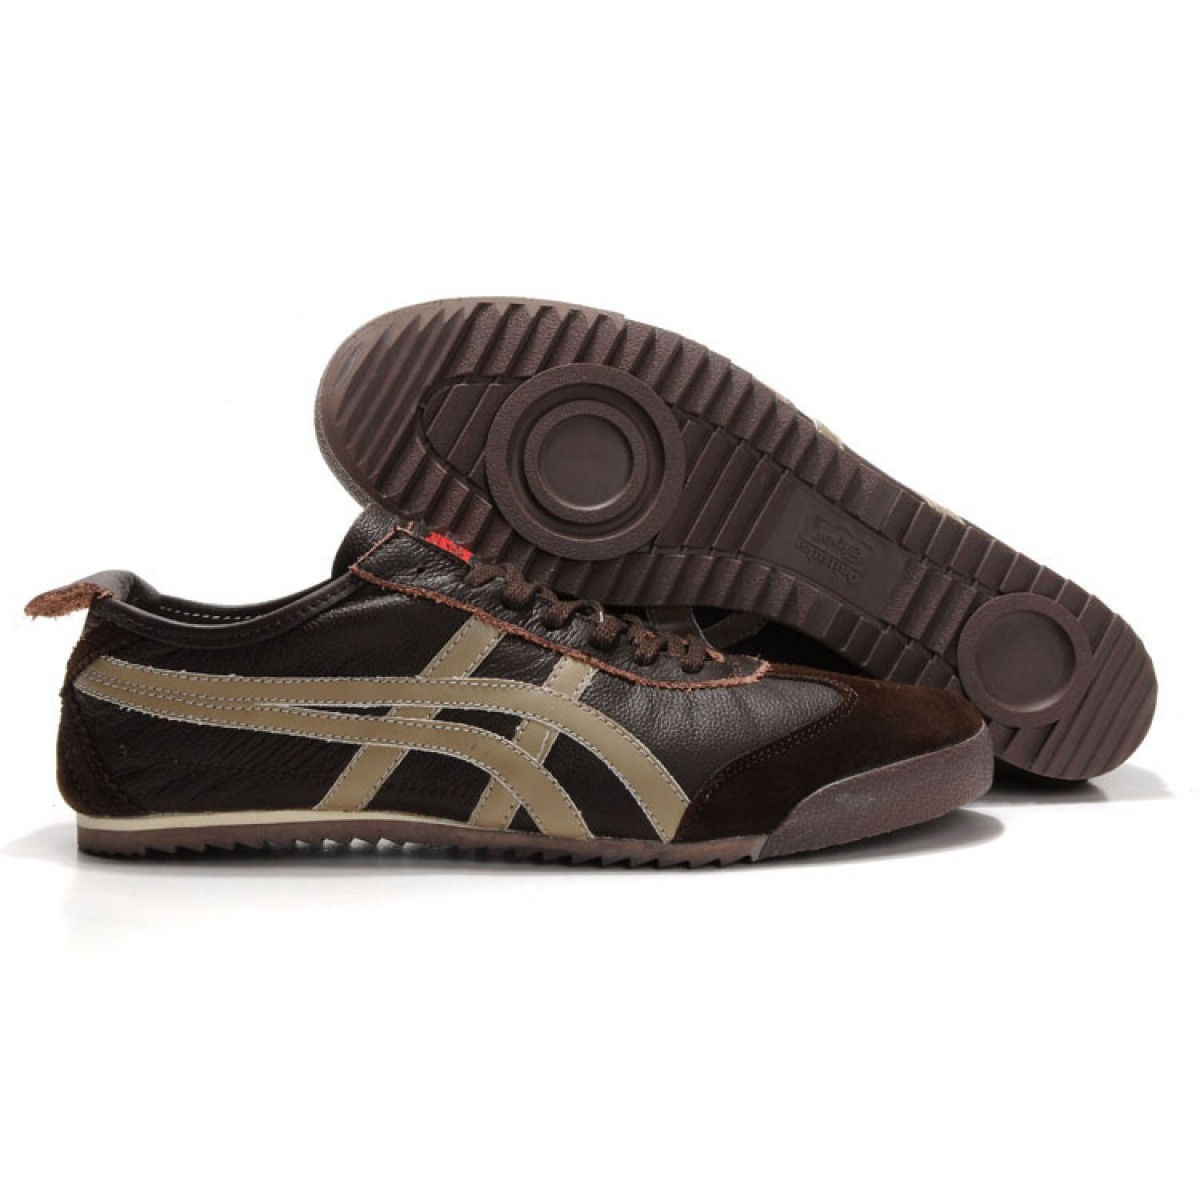 WS6302 Soldes Asics Mexico 66 Deluxe Hommes beige brun 34486393 Pas Cher